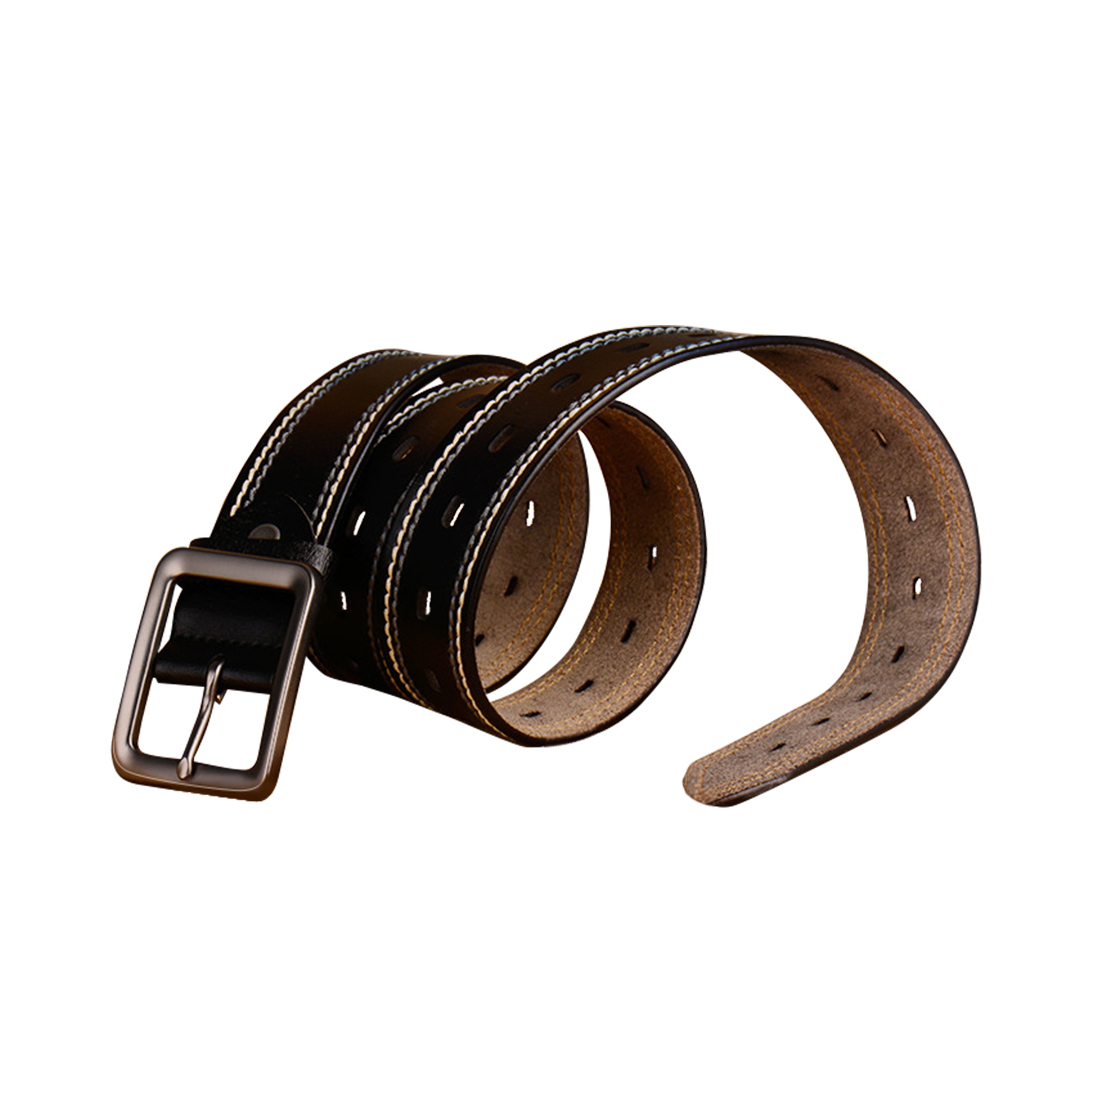 Mens Modern Stitching Single Pin Buckle Leather Belt 39mm Width 1 1/2 Black 120cm